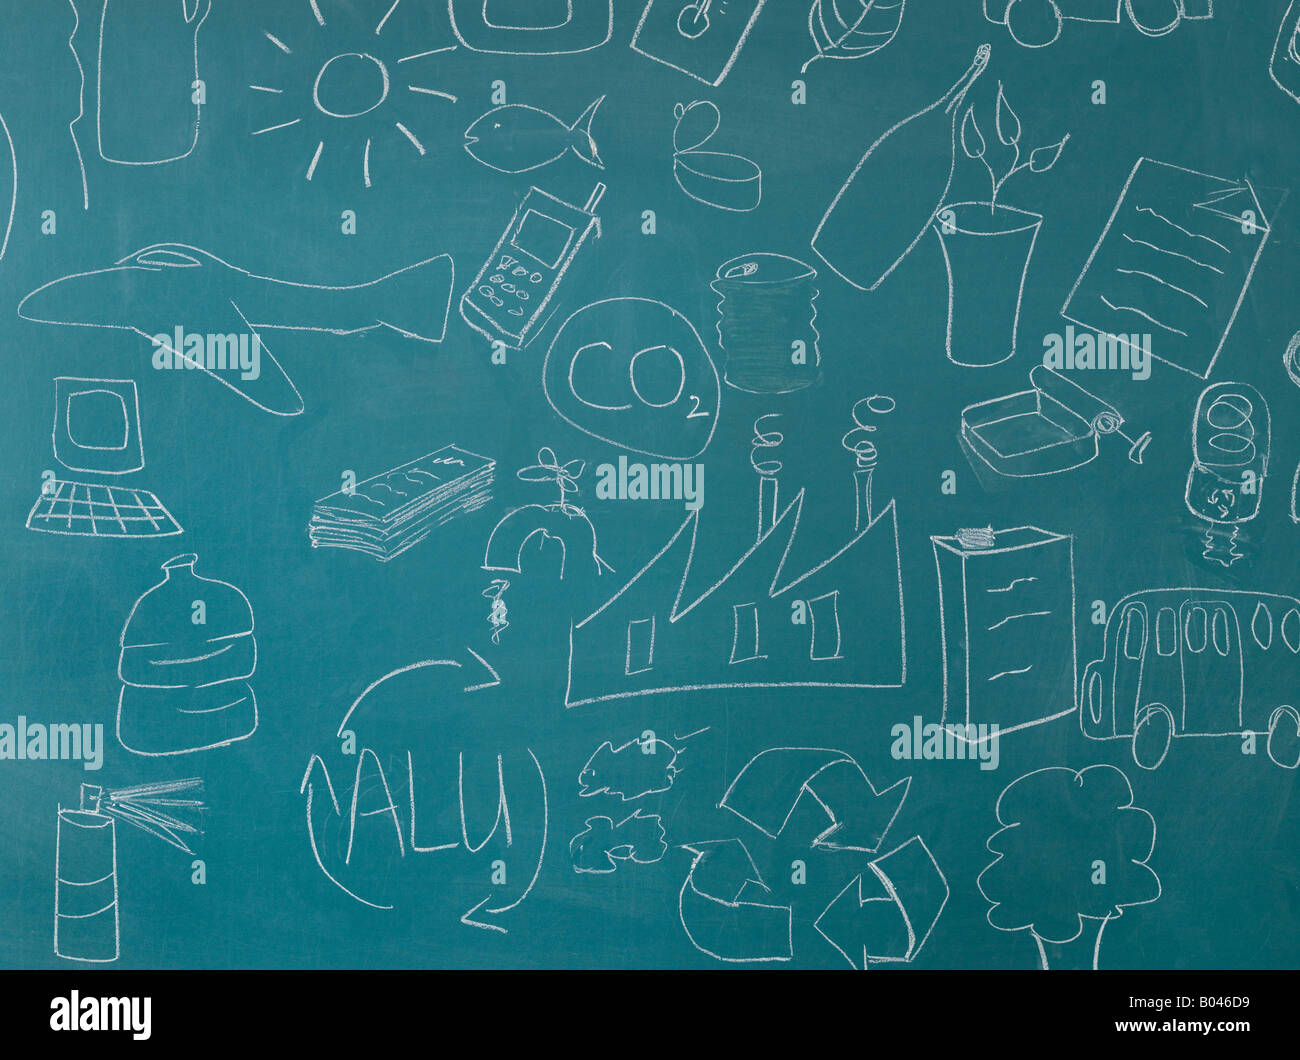 Recycling illustrations on blackboard - Stock Image